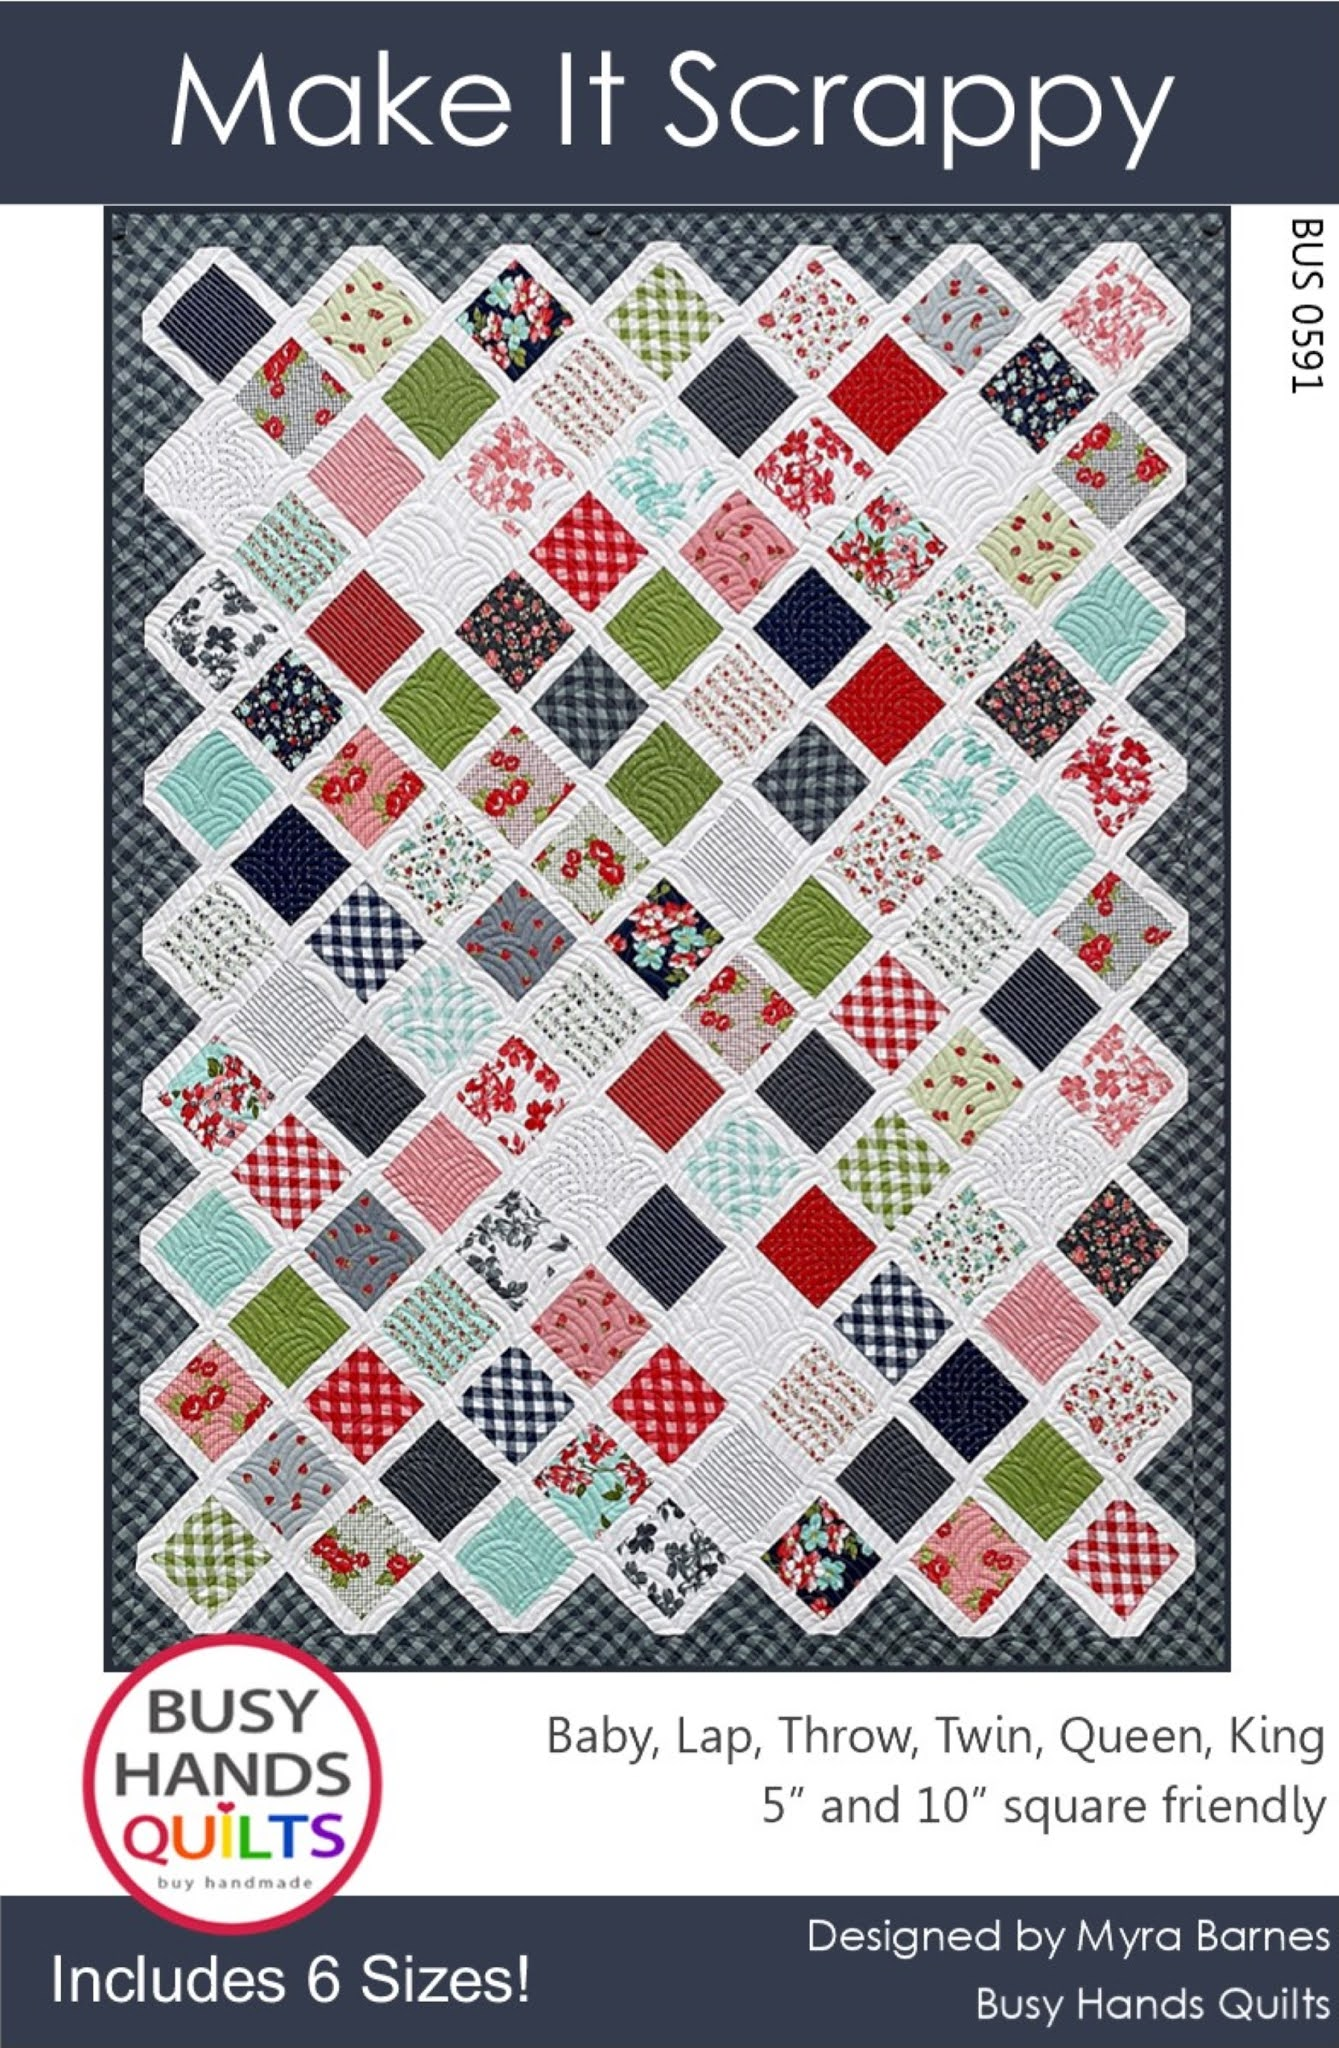 Make It Scrappy Quilt Pattern by Myra Barnes of Busy Hands Quilts